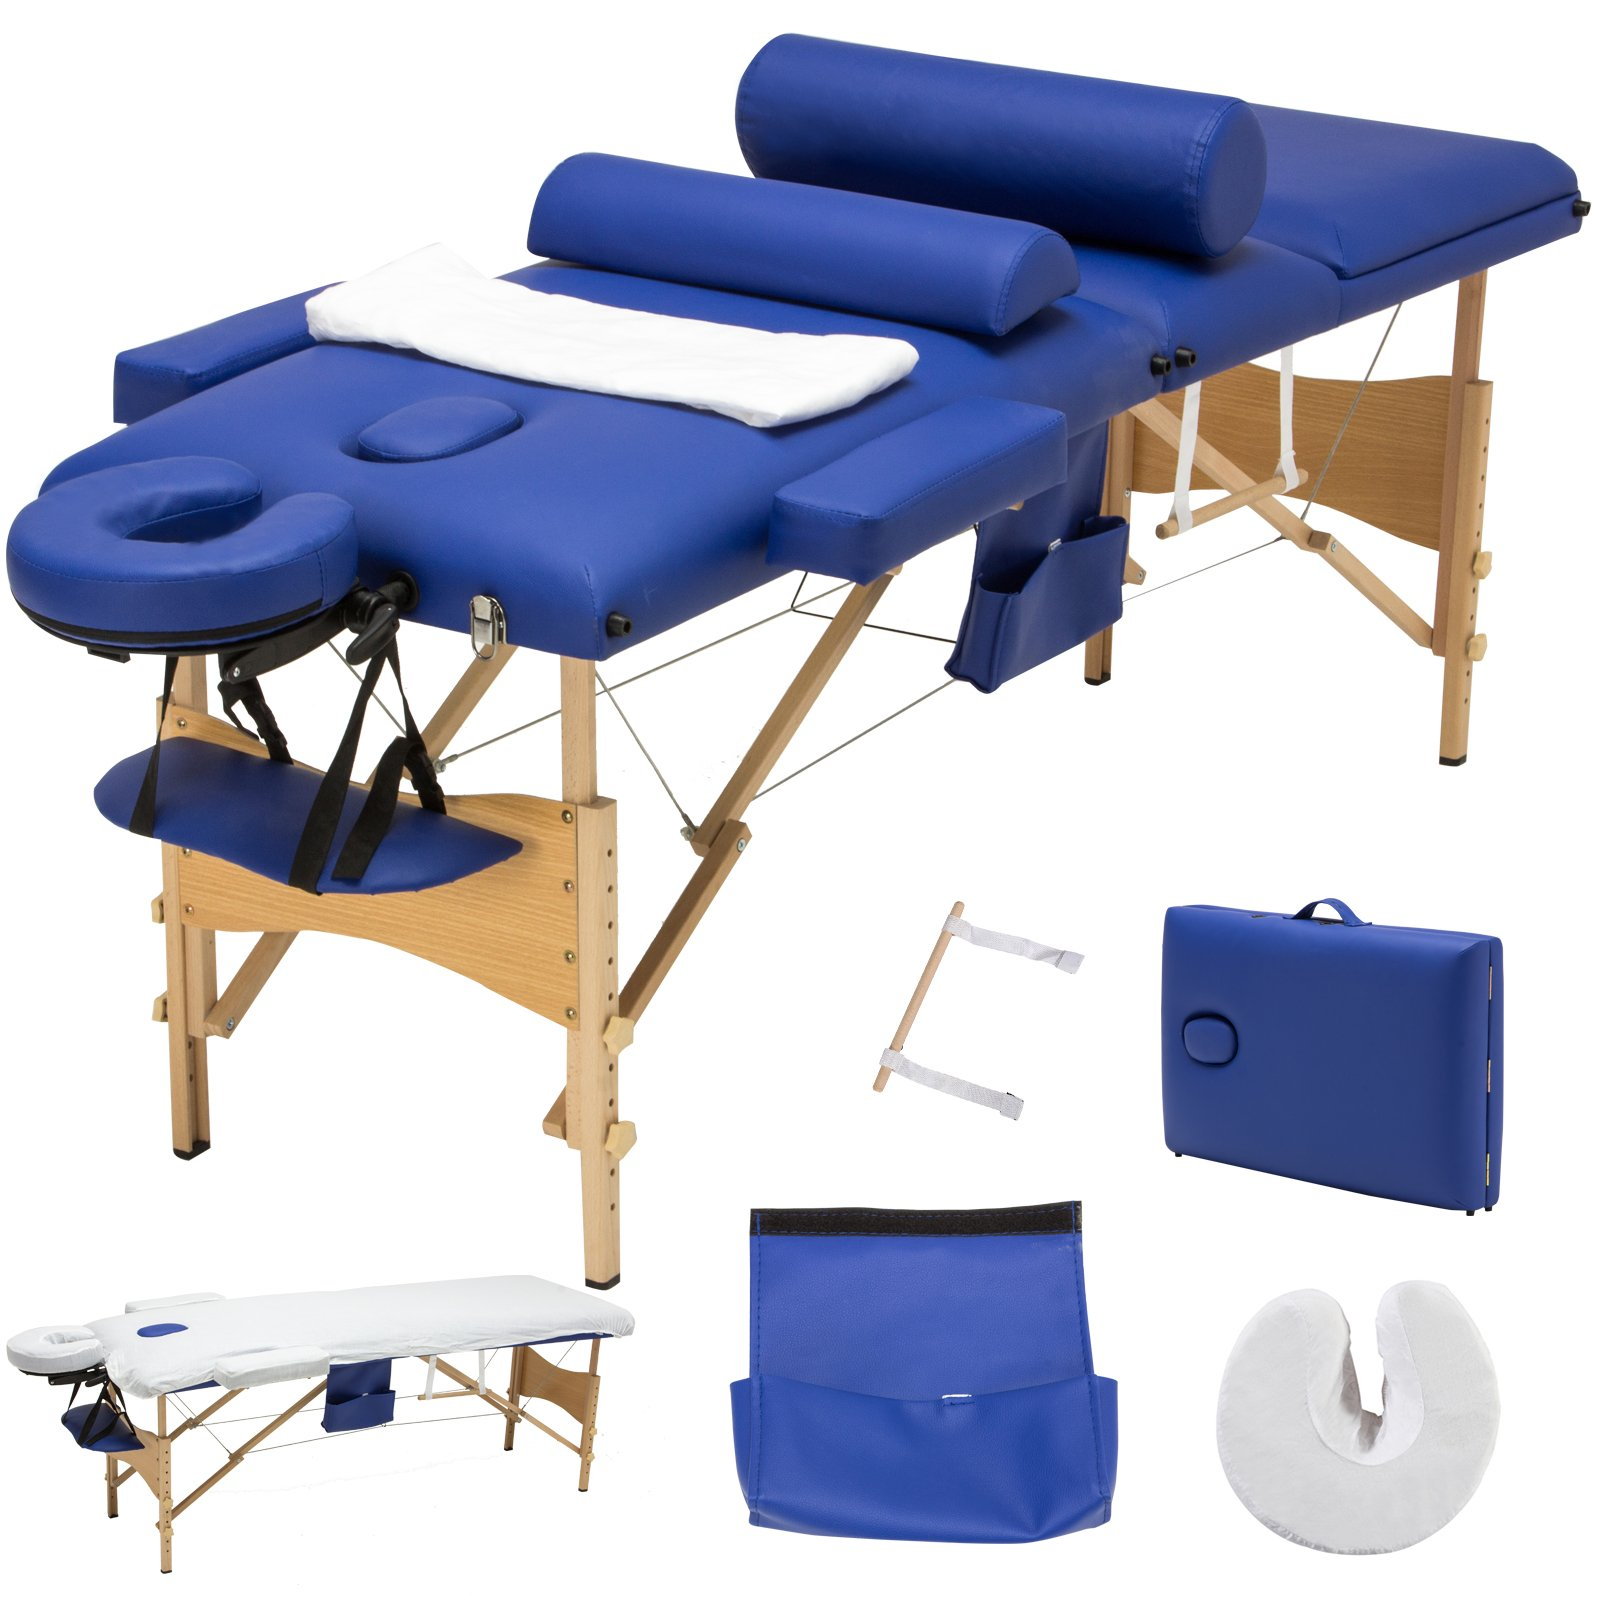 Murtisol Folding Massage Table 84'' Professional Massage Bed Luxury-Model With Carrying Bag & Additional Accessories Blue